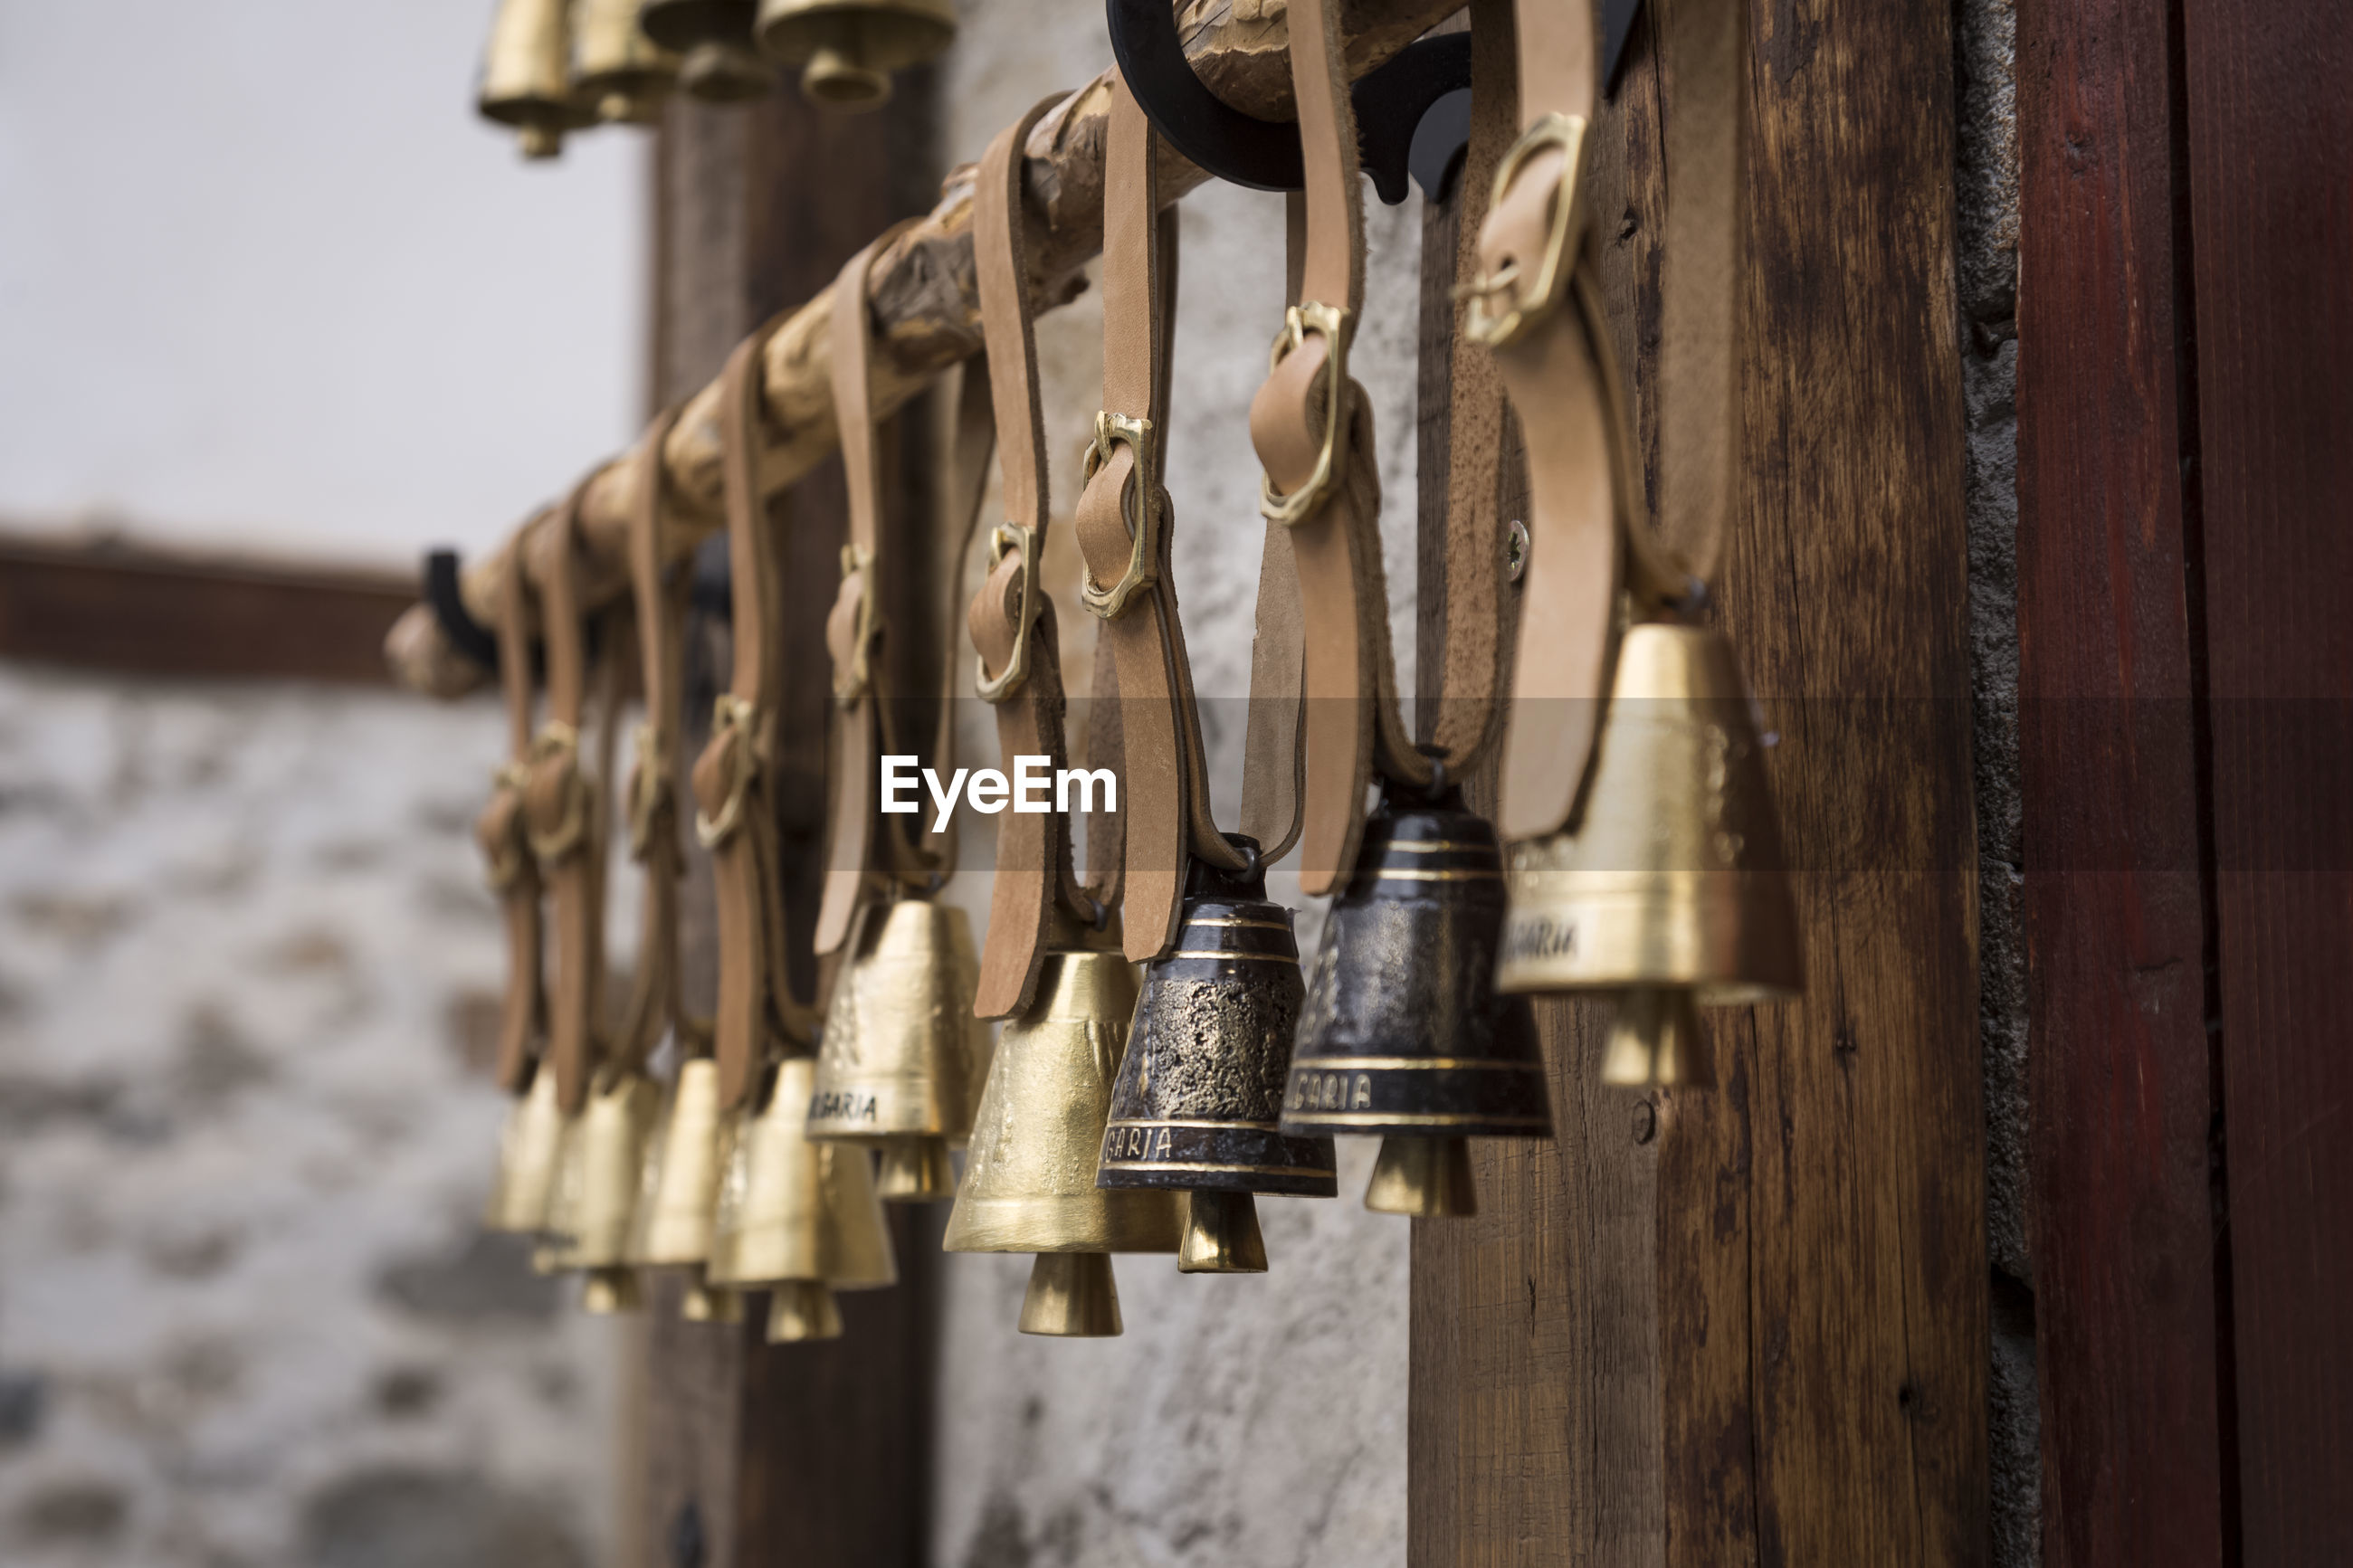 Close-up of bells hanging on wood with leather belt